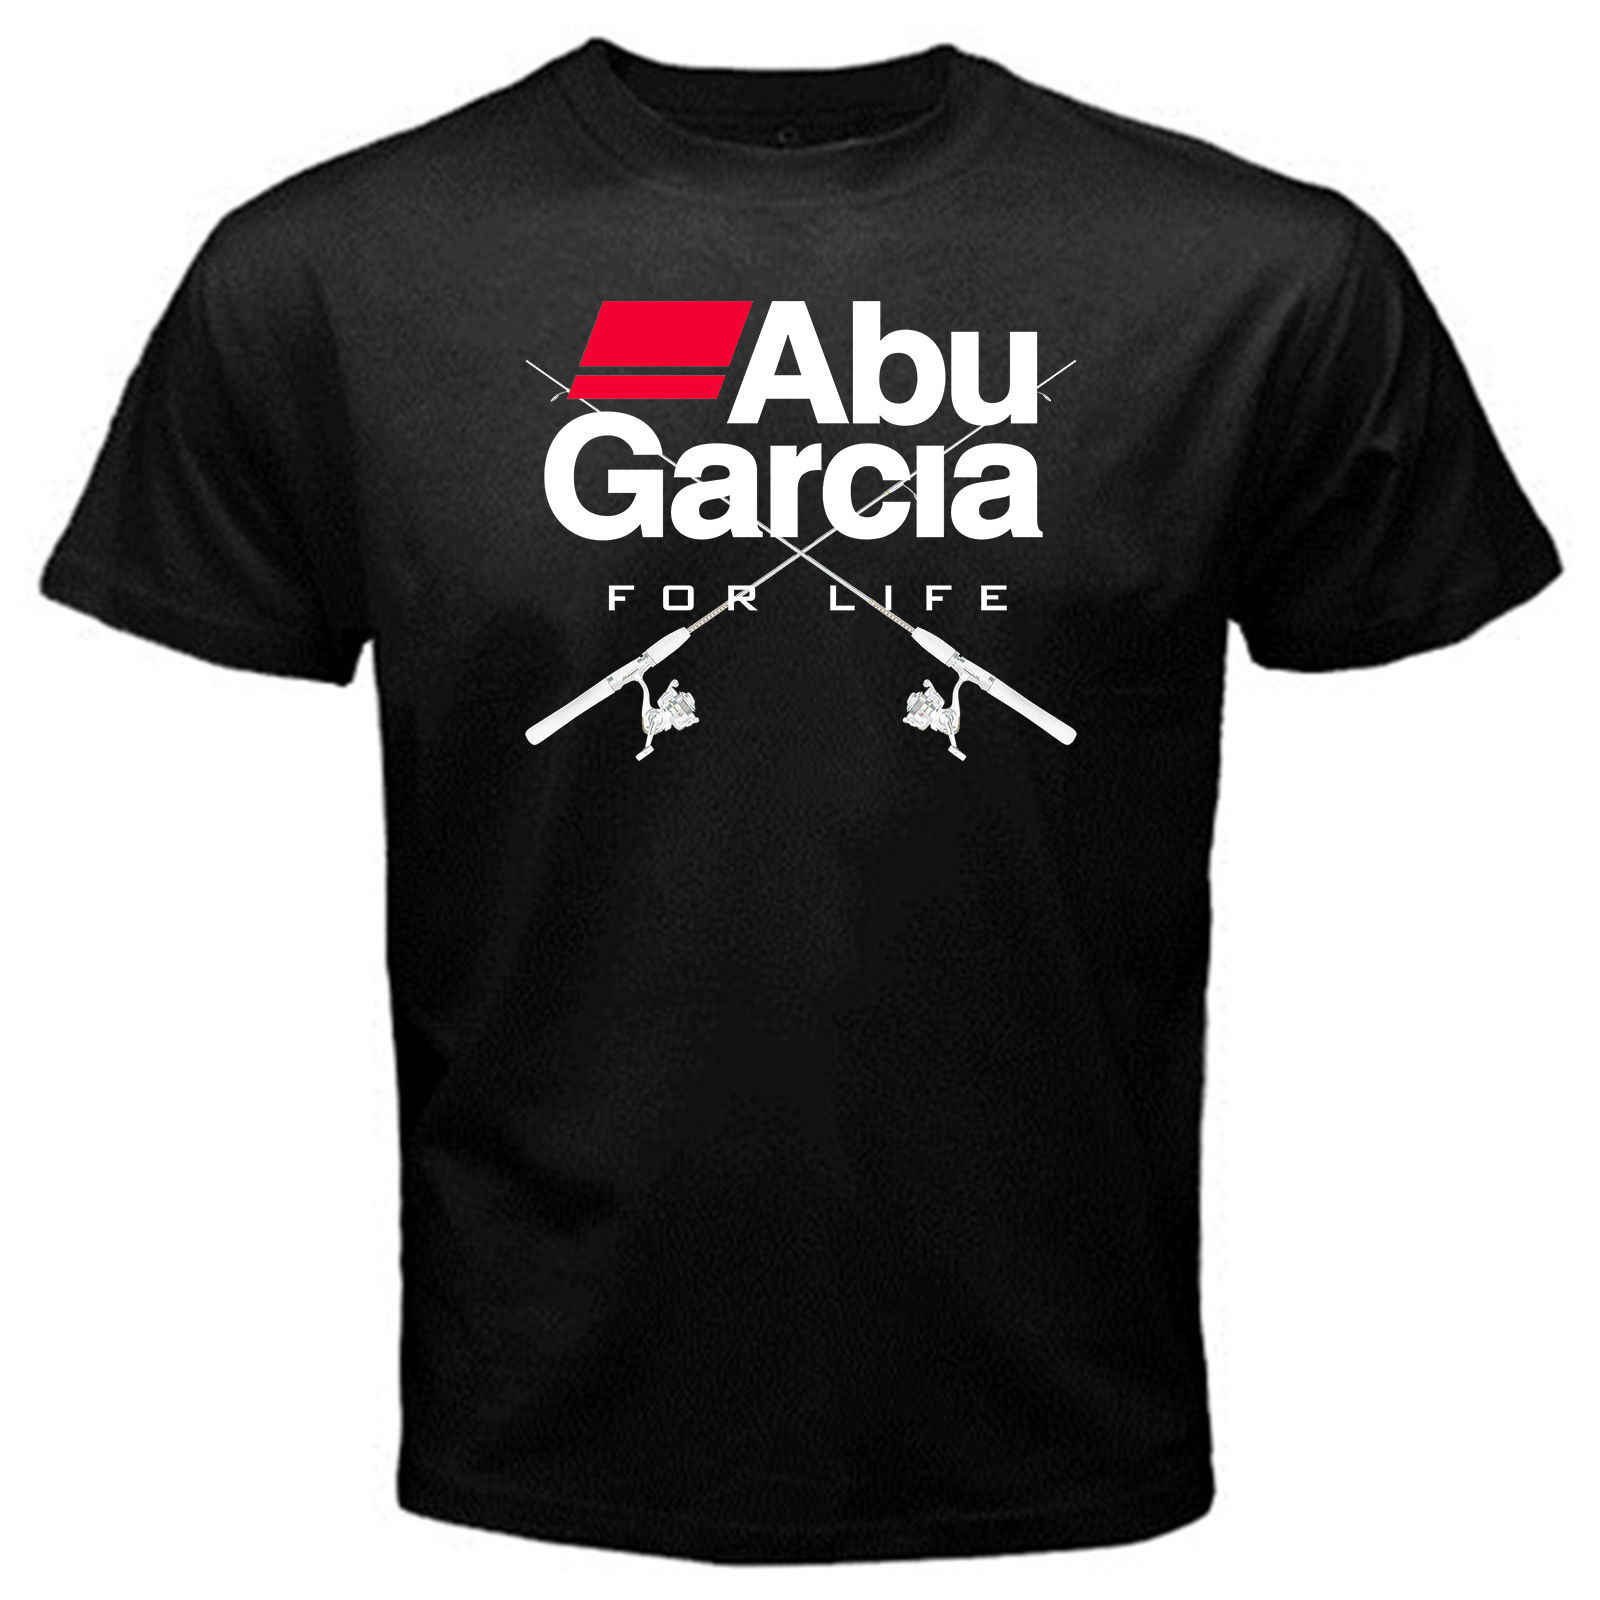 Abu Garcia DUFRESNE AND REDDING Fishinger Galveston Panama T Shirt 2017 Fashion Short Sleeve Black Adult T-Shirt S-2Xl